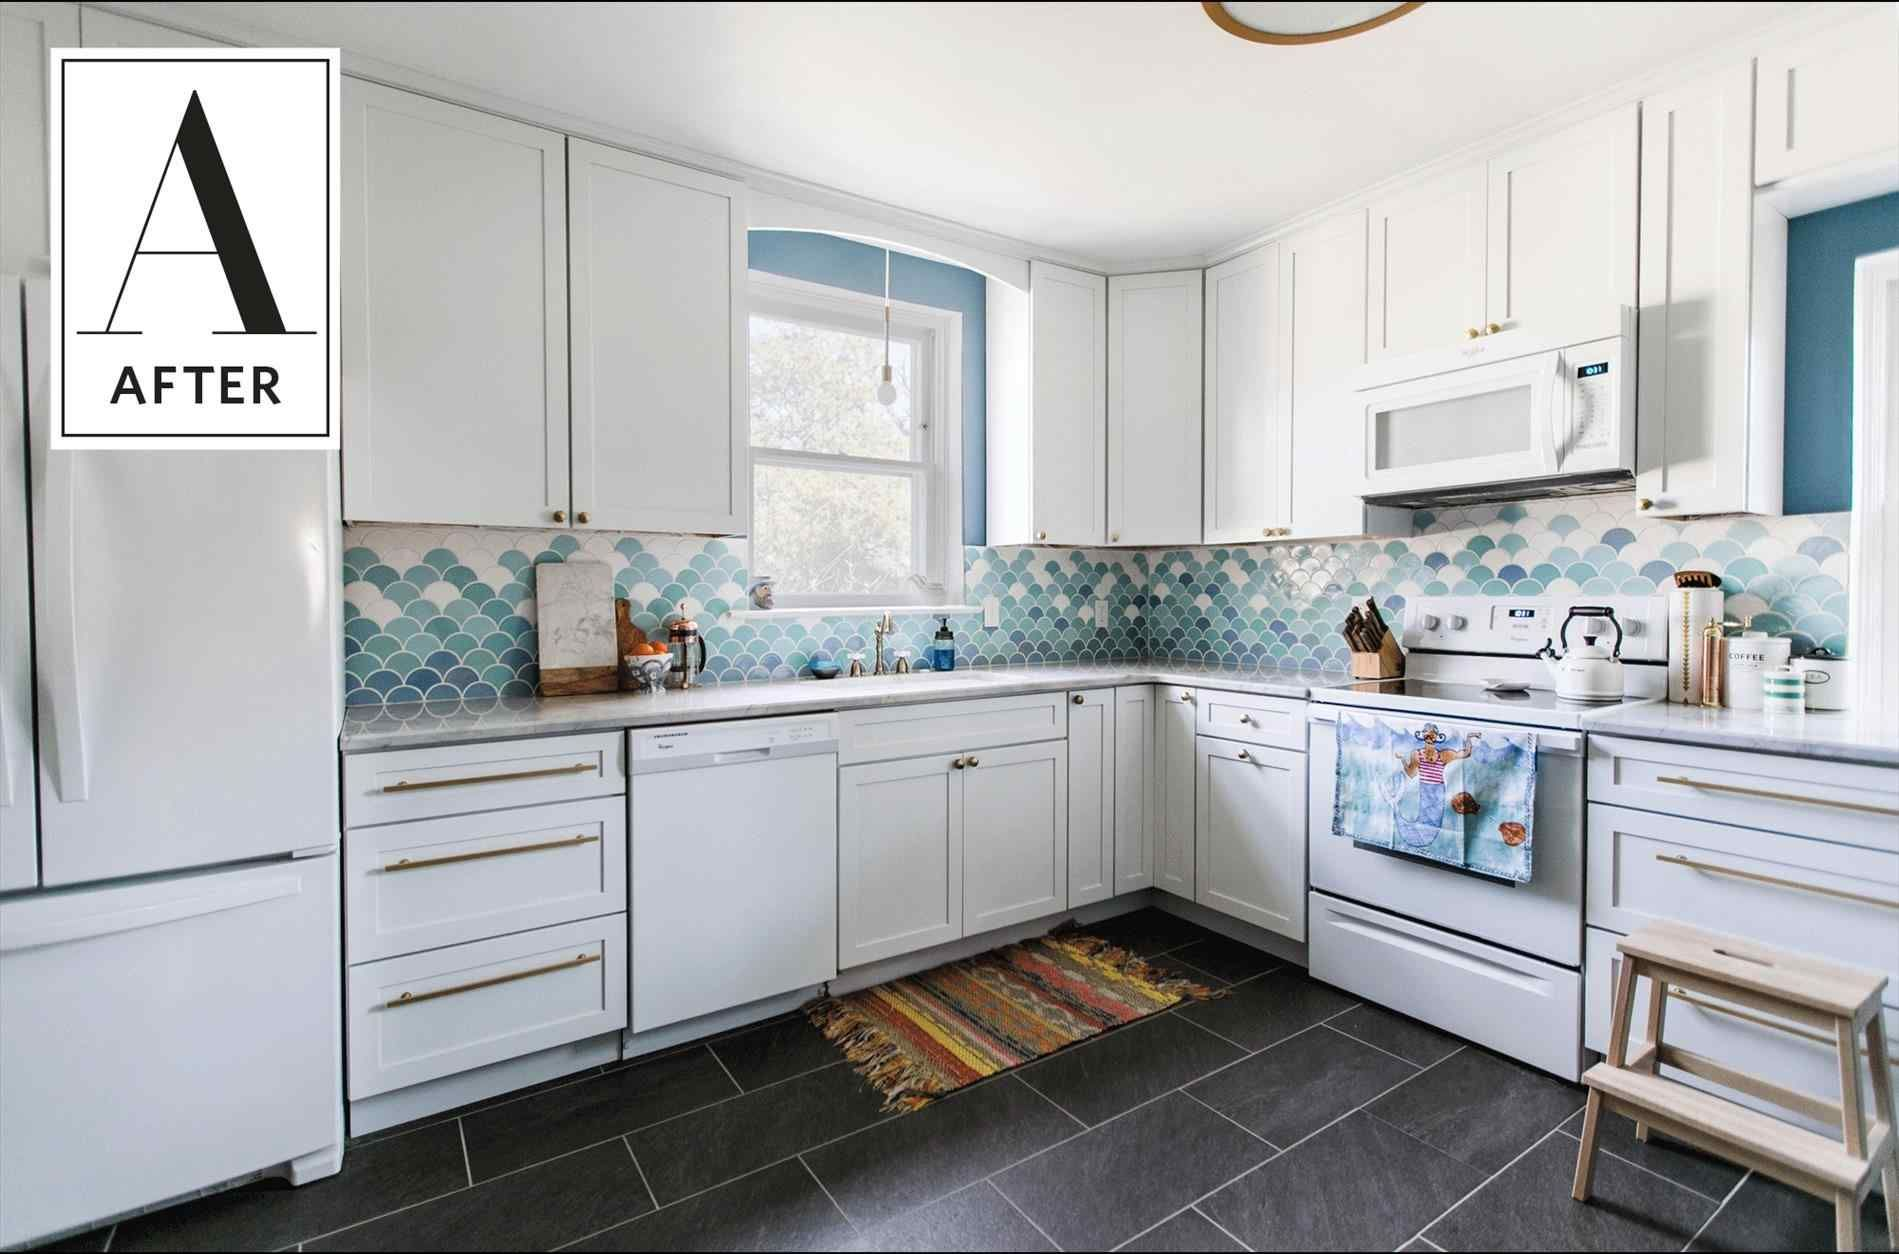 10 top and unique inexpensive countertop ideas for stunning kitchen kitchen backsplash trends on kitchen ideas unique id=81917